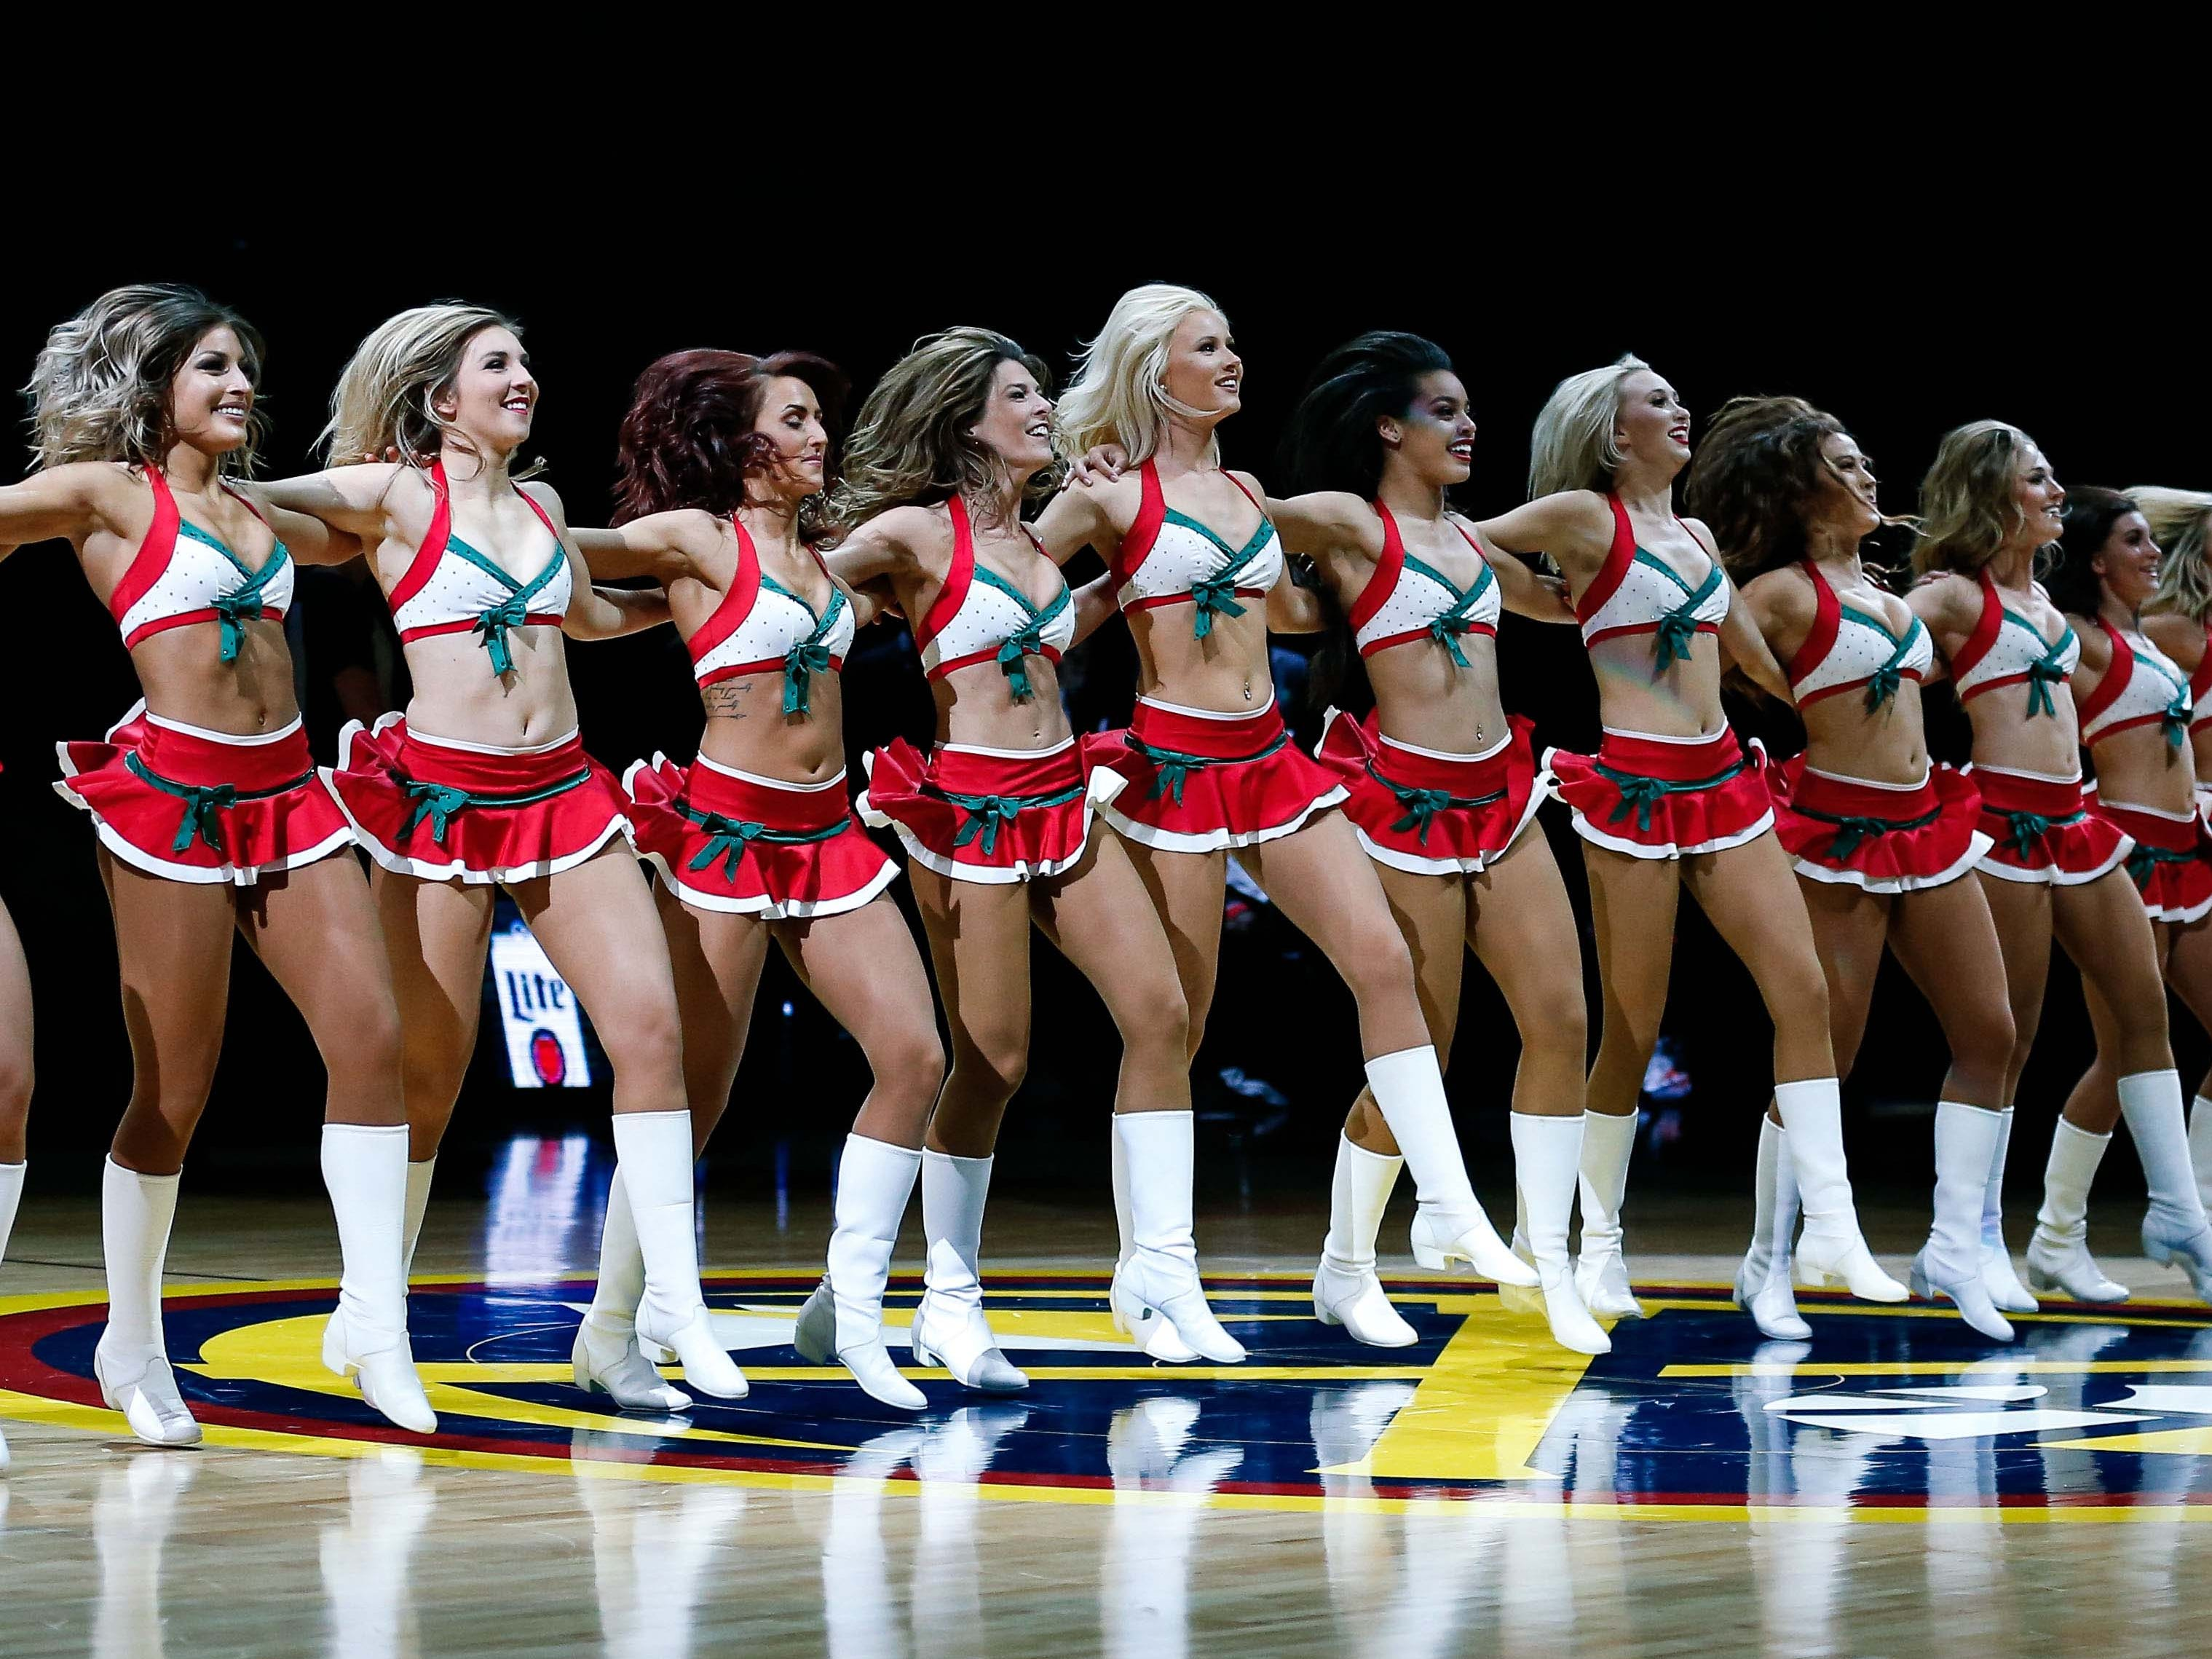 Dec. 16: Nuggets dancers perform a festive routine at the Pepsi Center in Denver.